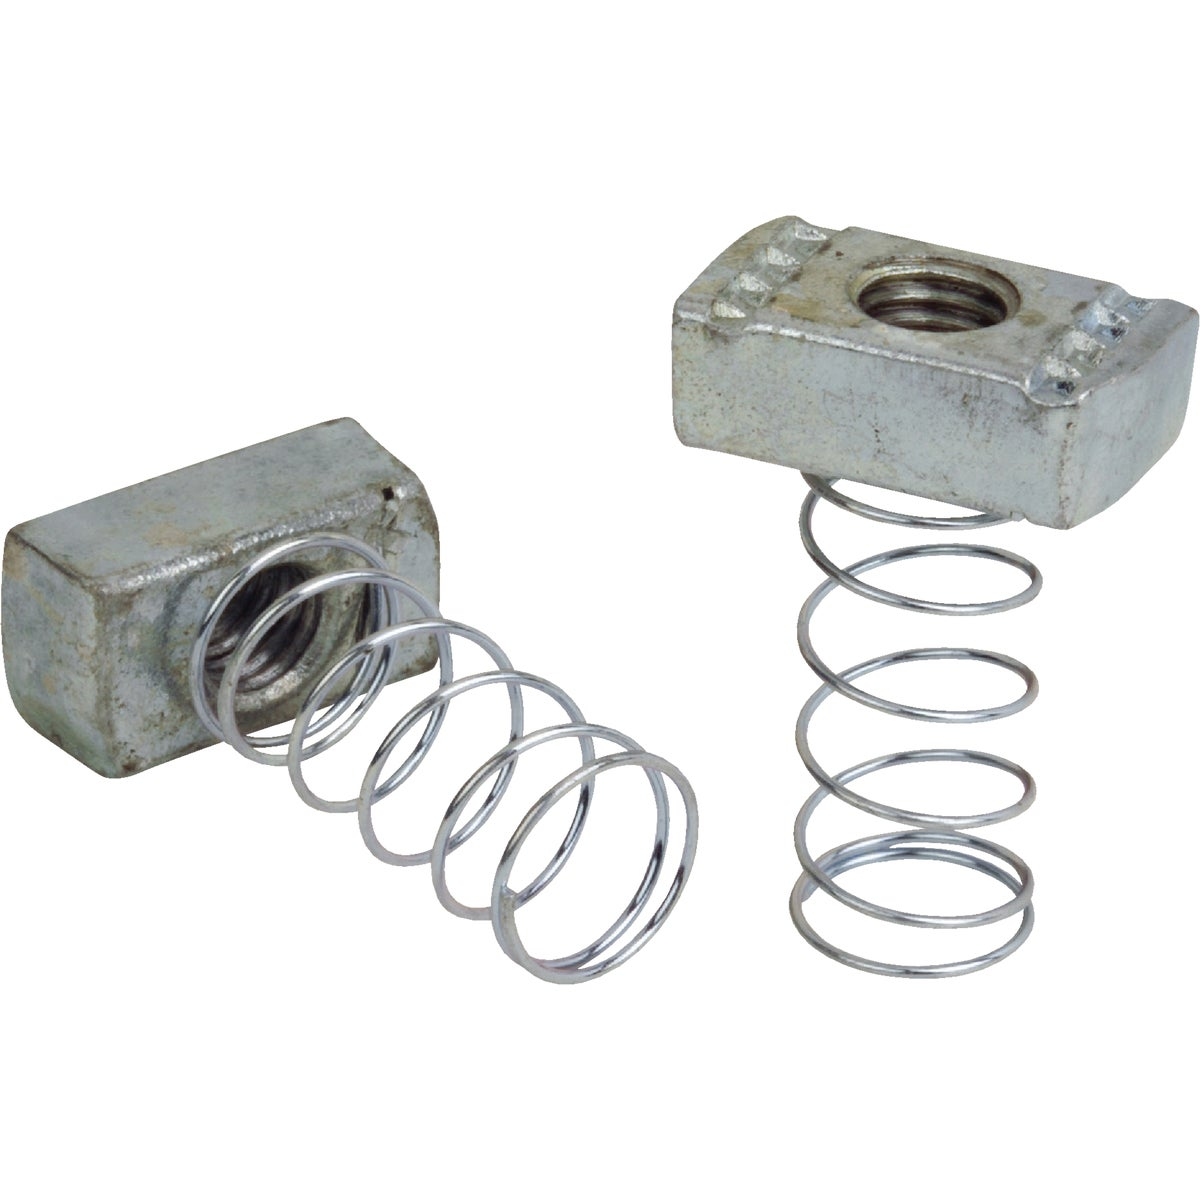 "5PC 3/8"" SPRING NUT - ZA100-3/8EG-10 by Thomas & Betts"